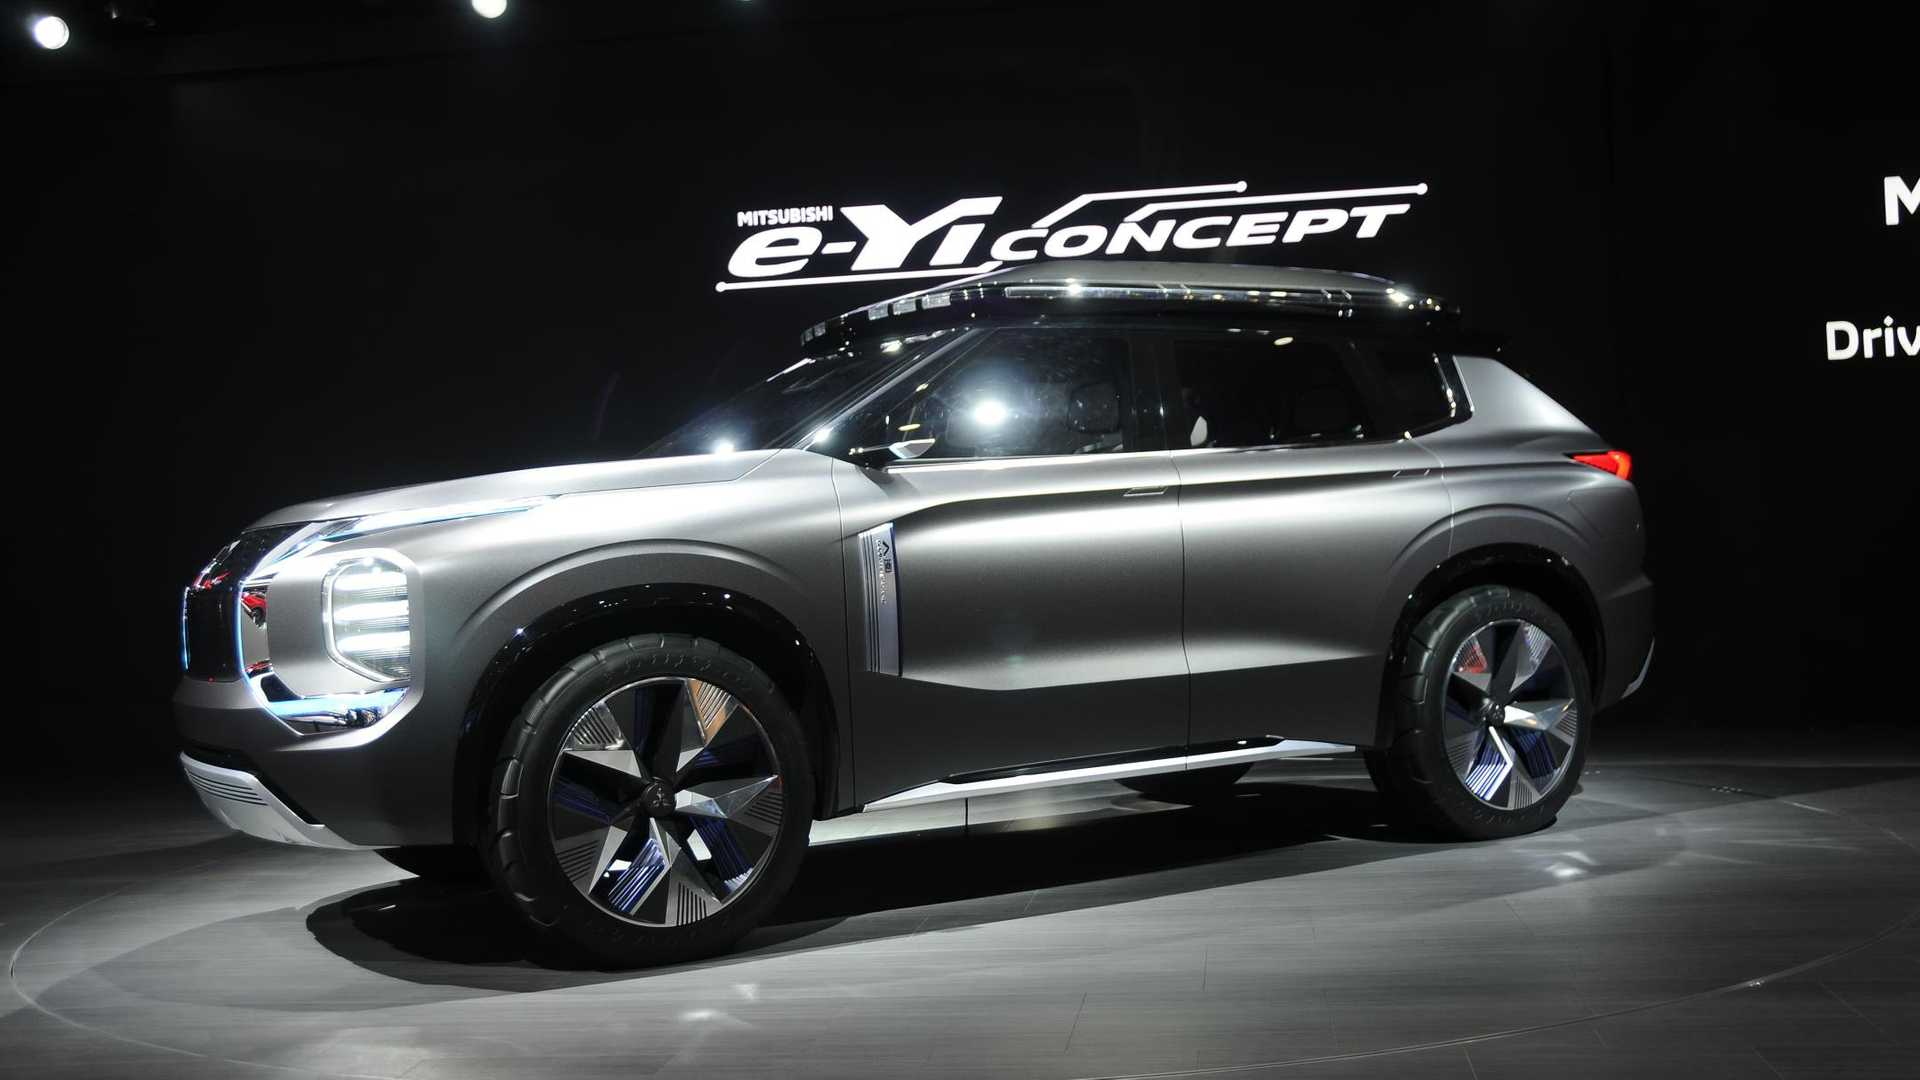 Best Ford Diesel Engine >> Mitsubishi e-Yi Concept Debuts In Shanghai